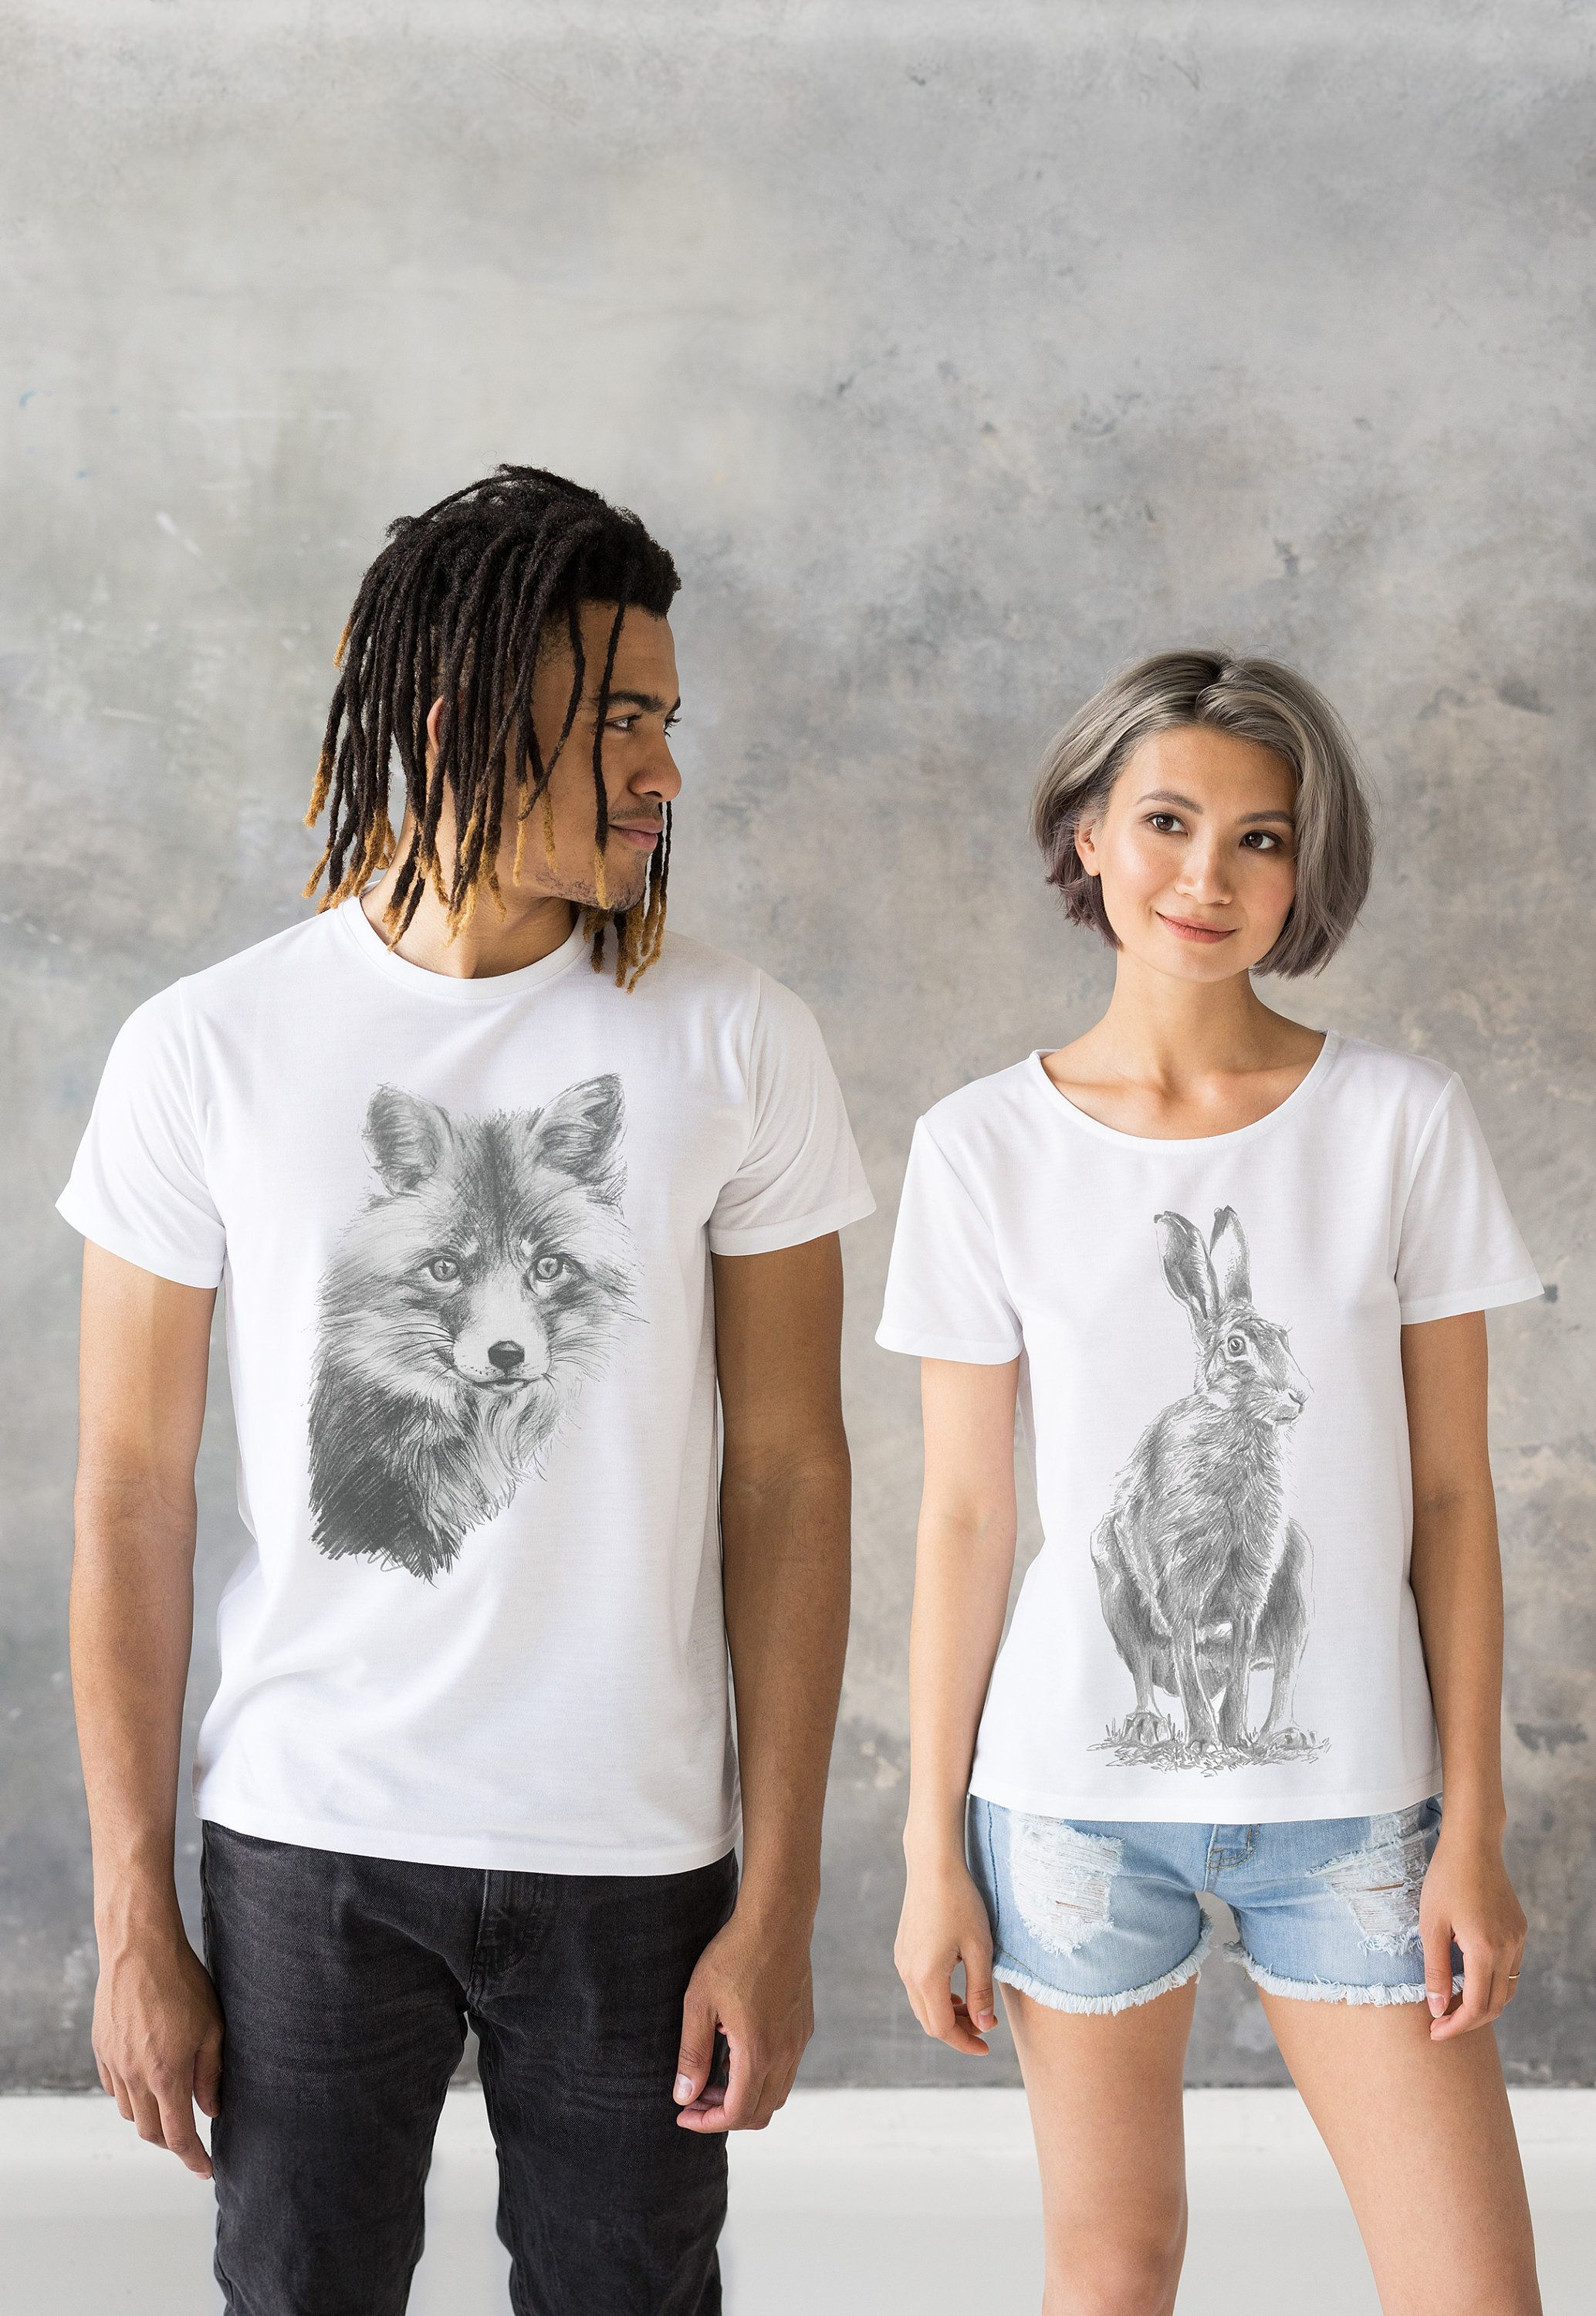 Matching couple t shirts artist pencil sketch drawing hare